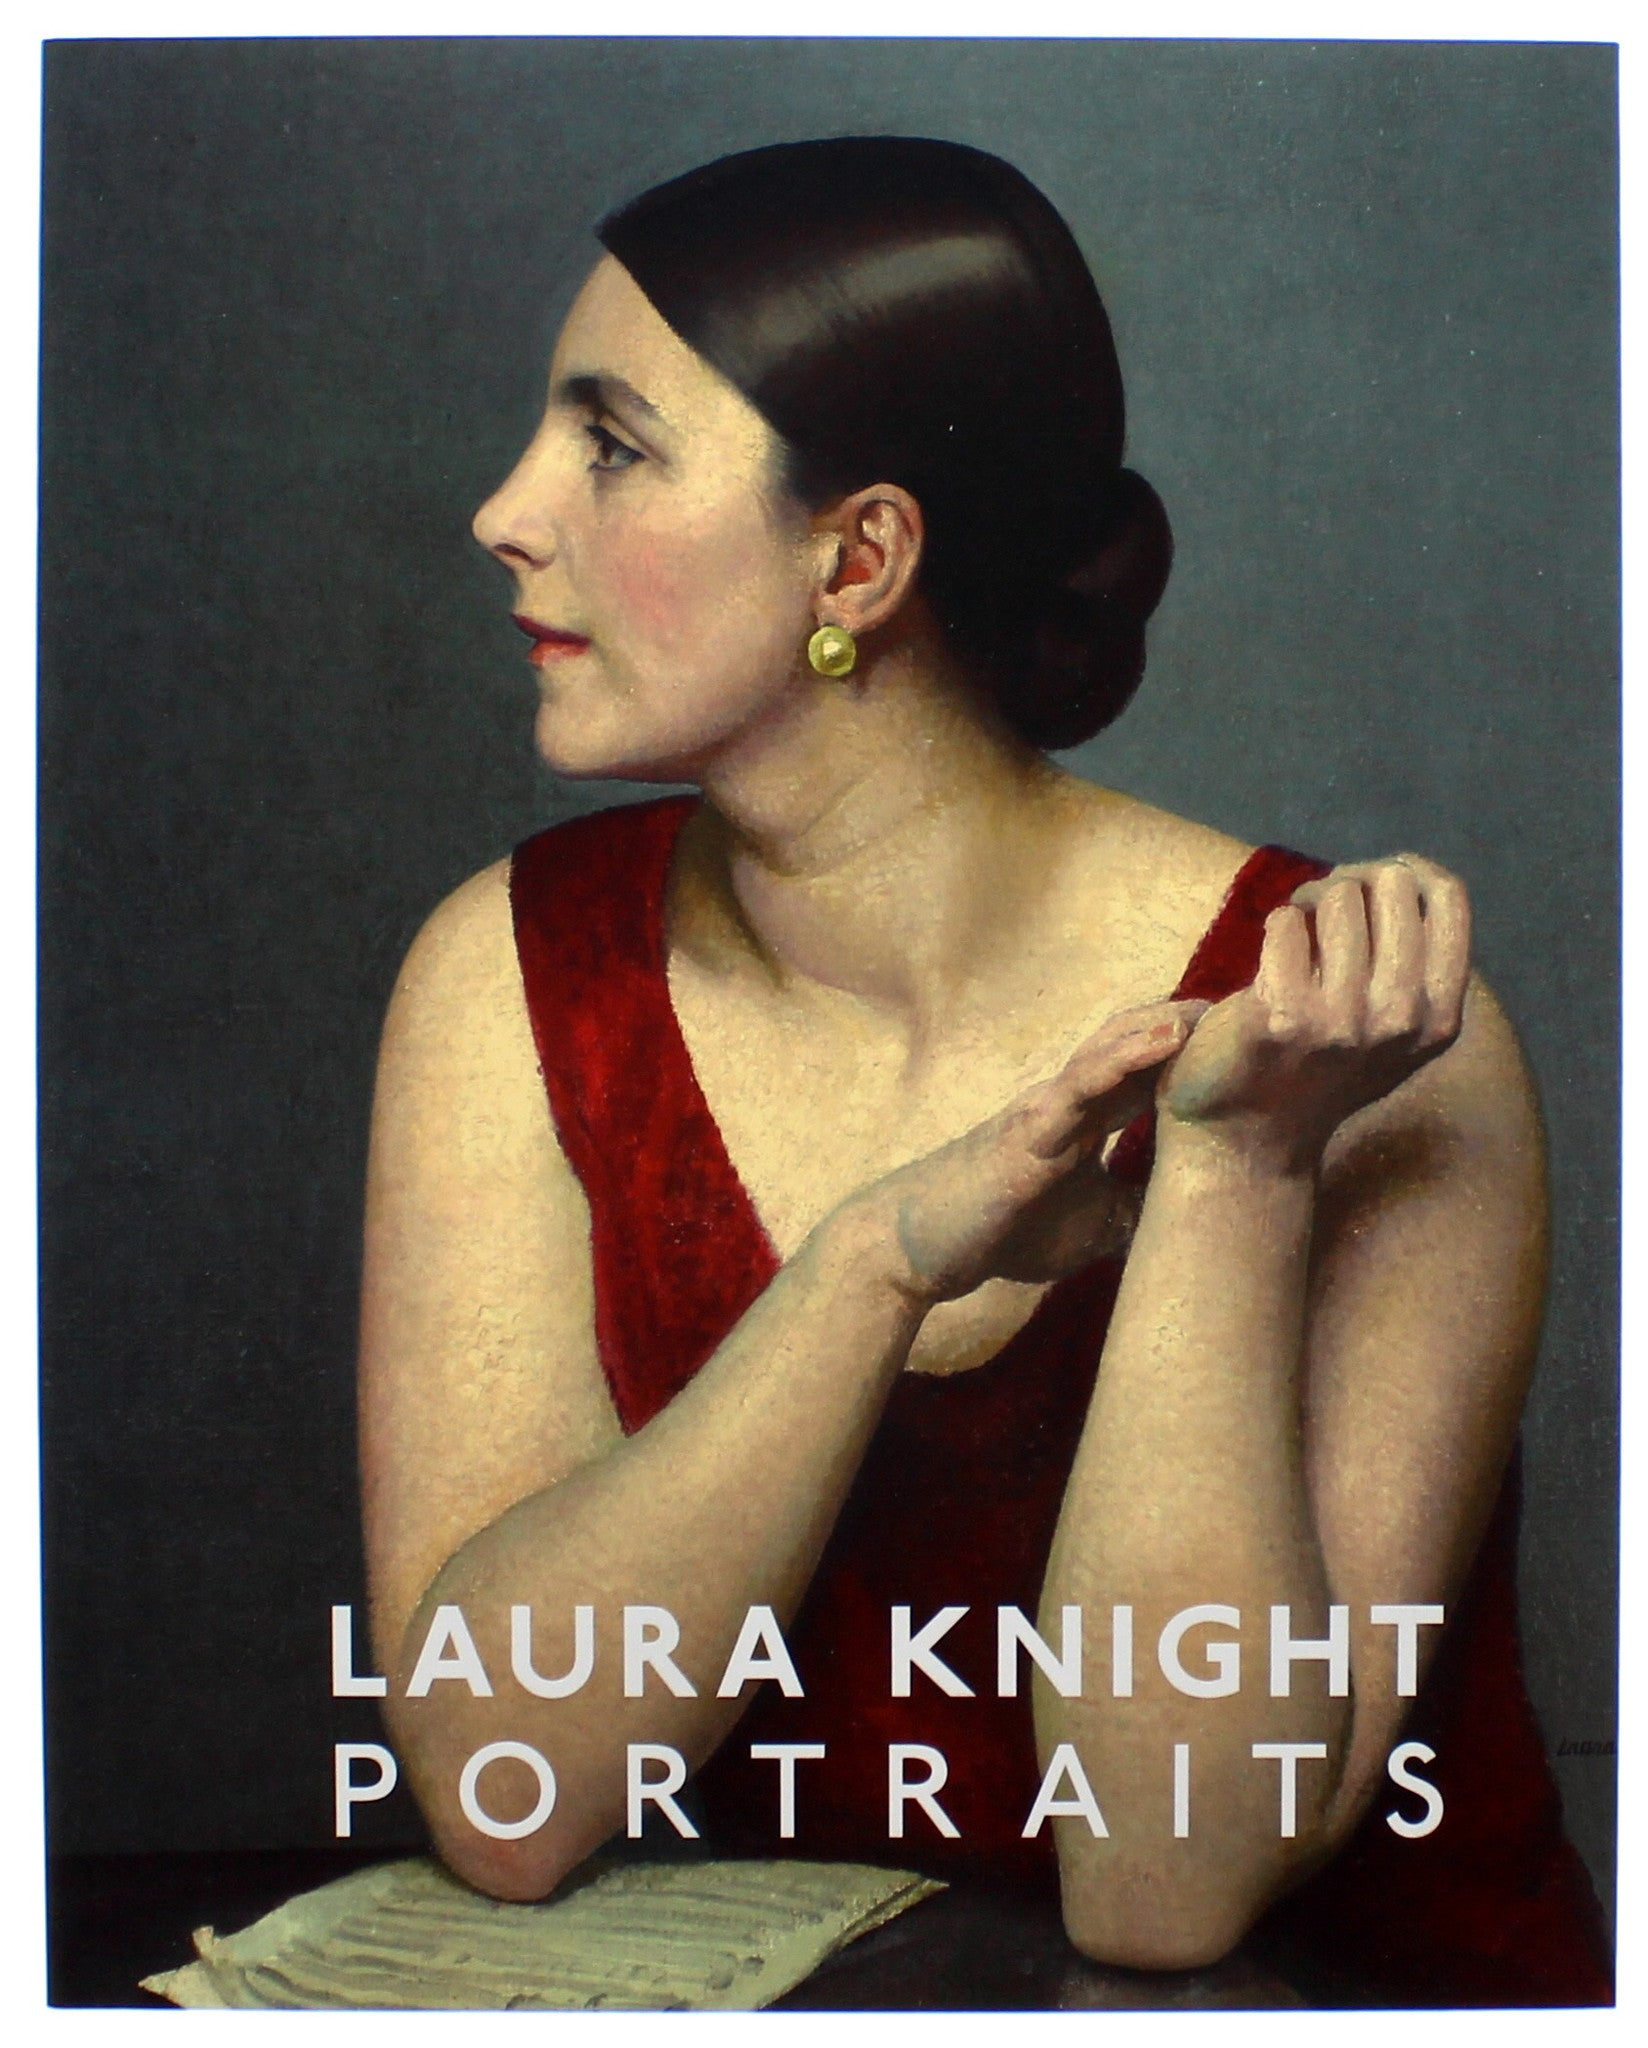 Laura Knight Portraits Paperback Catalogue